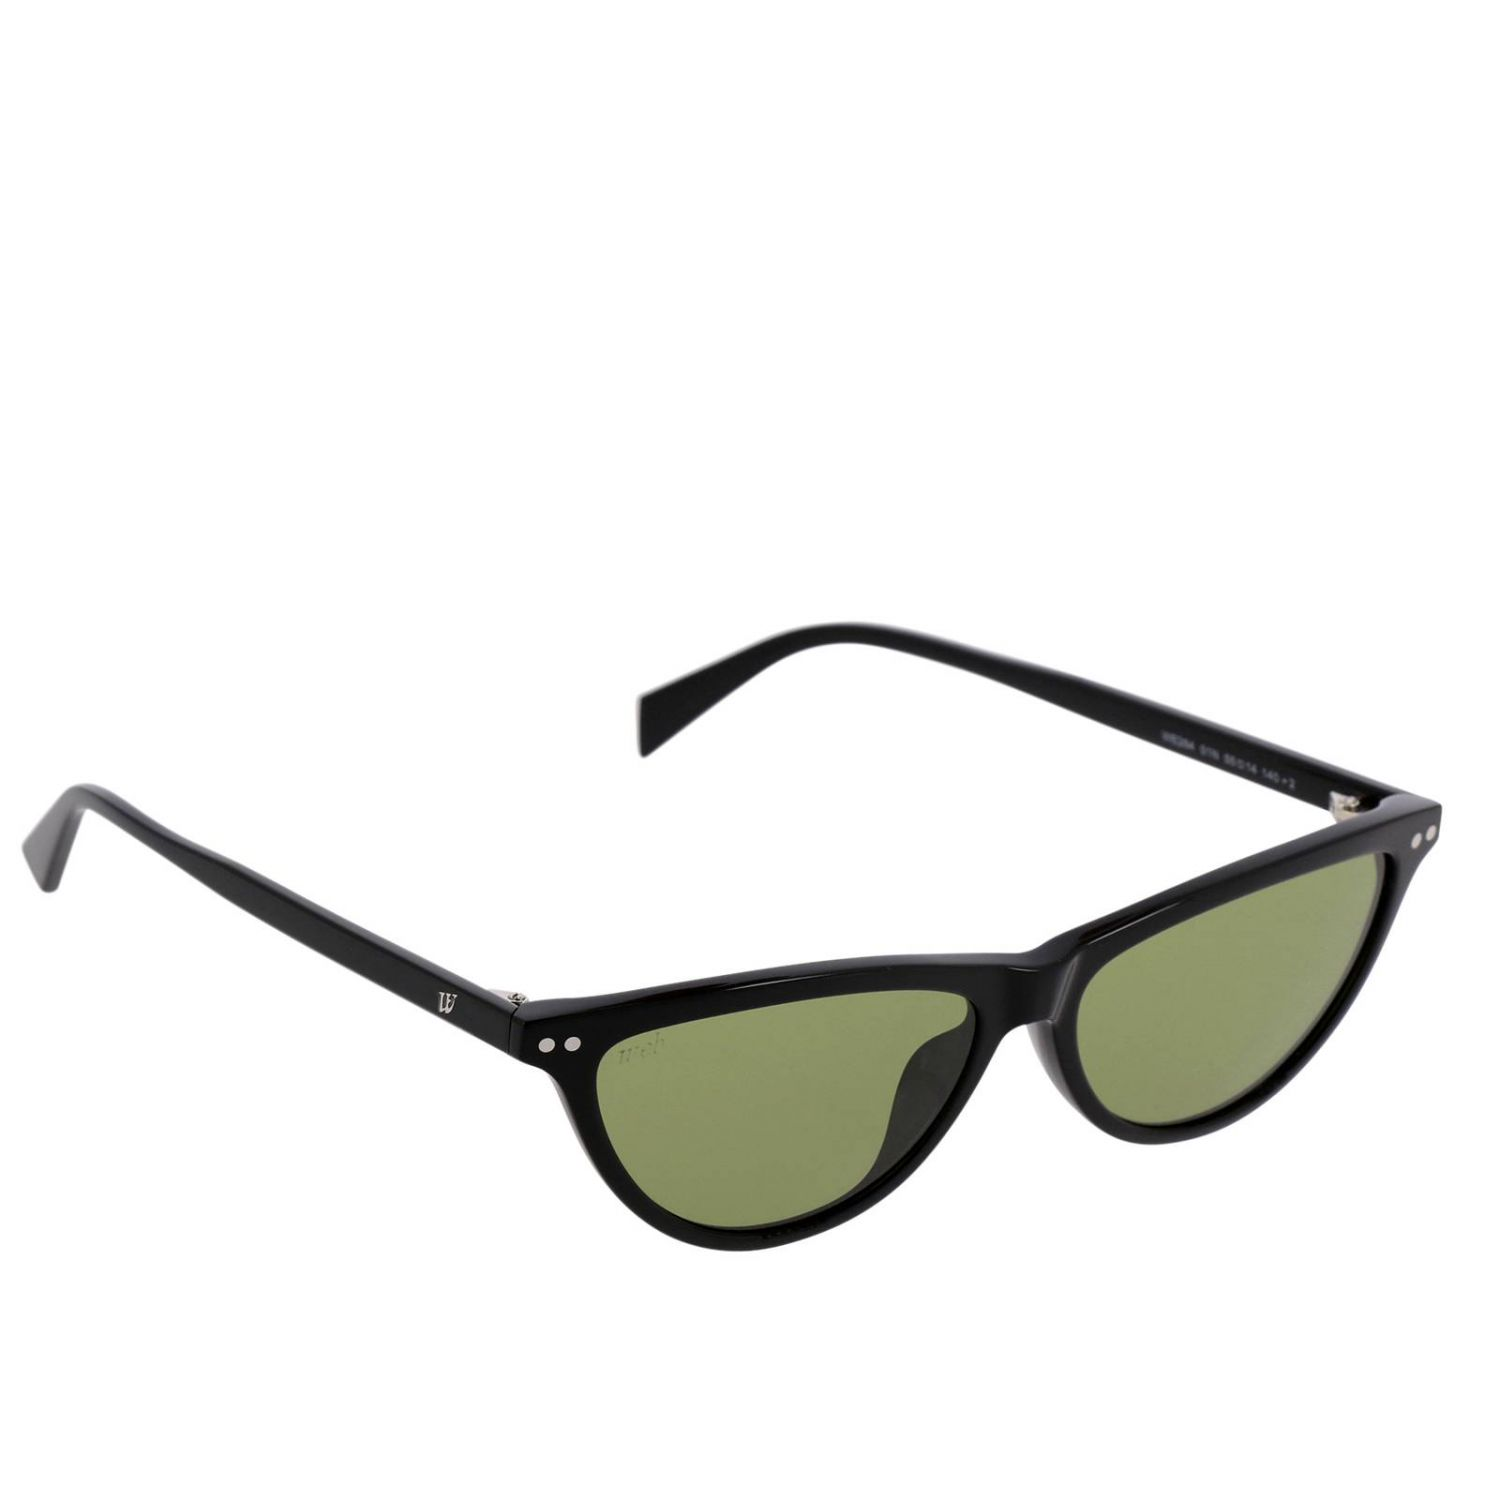 Sunglasses women Web acid green 1